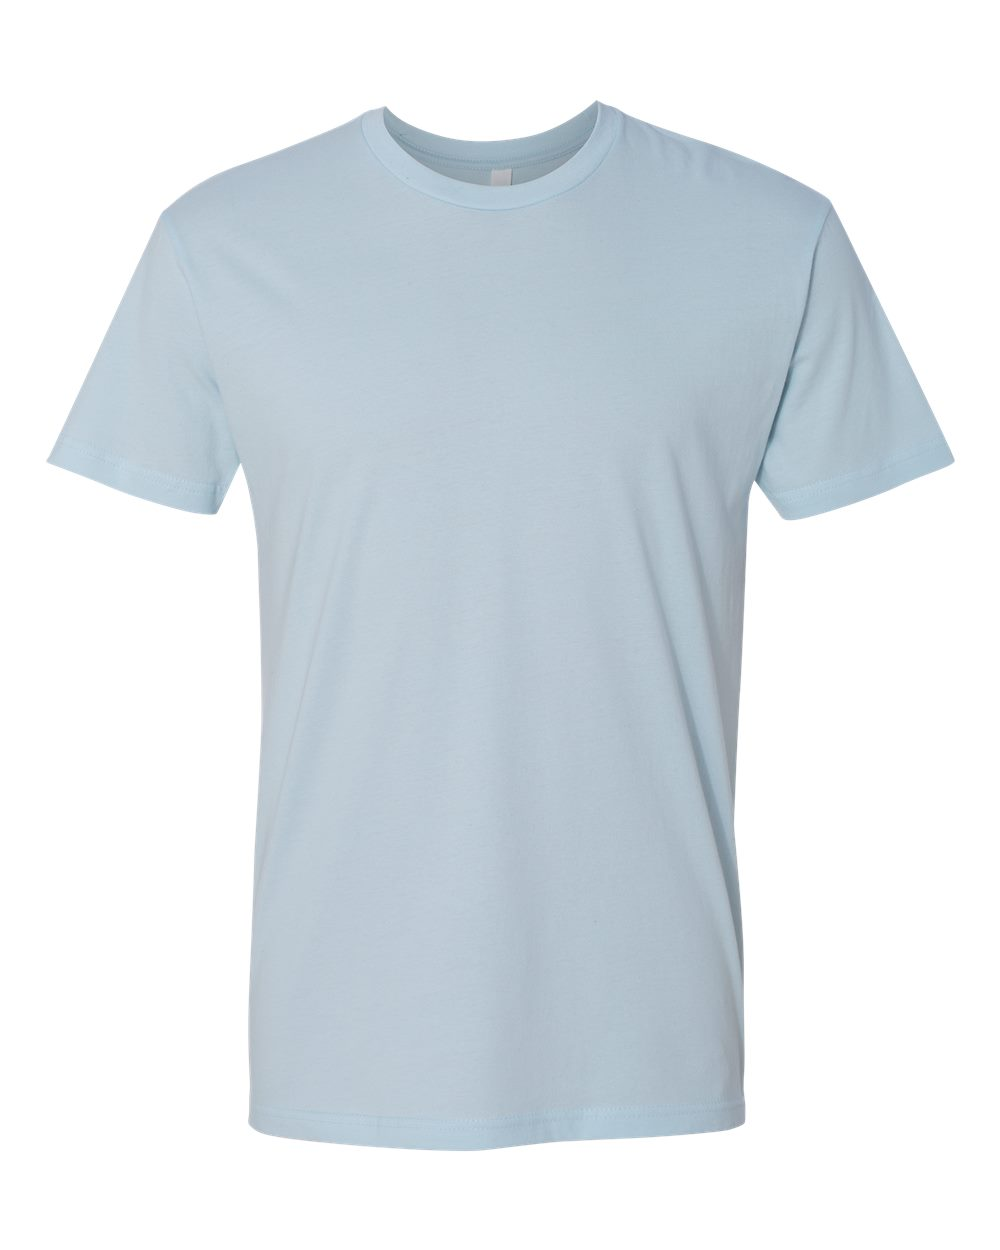 Next_Level_3600_Light_Blue_Front_High.jpg